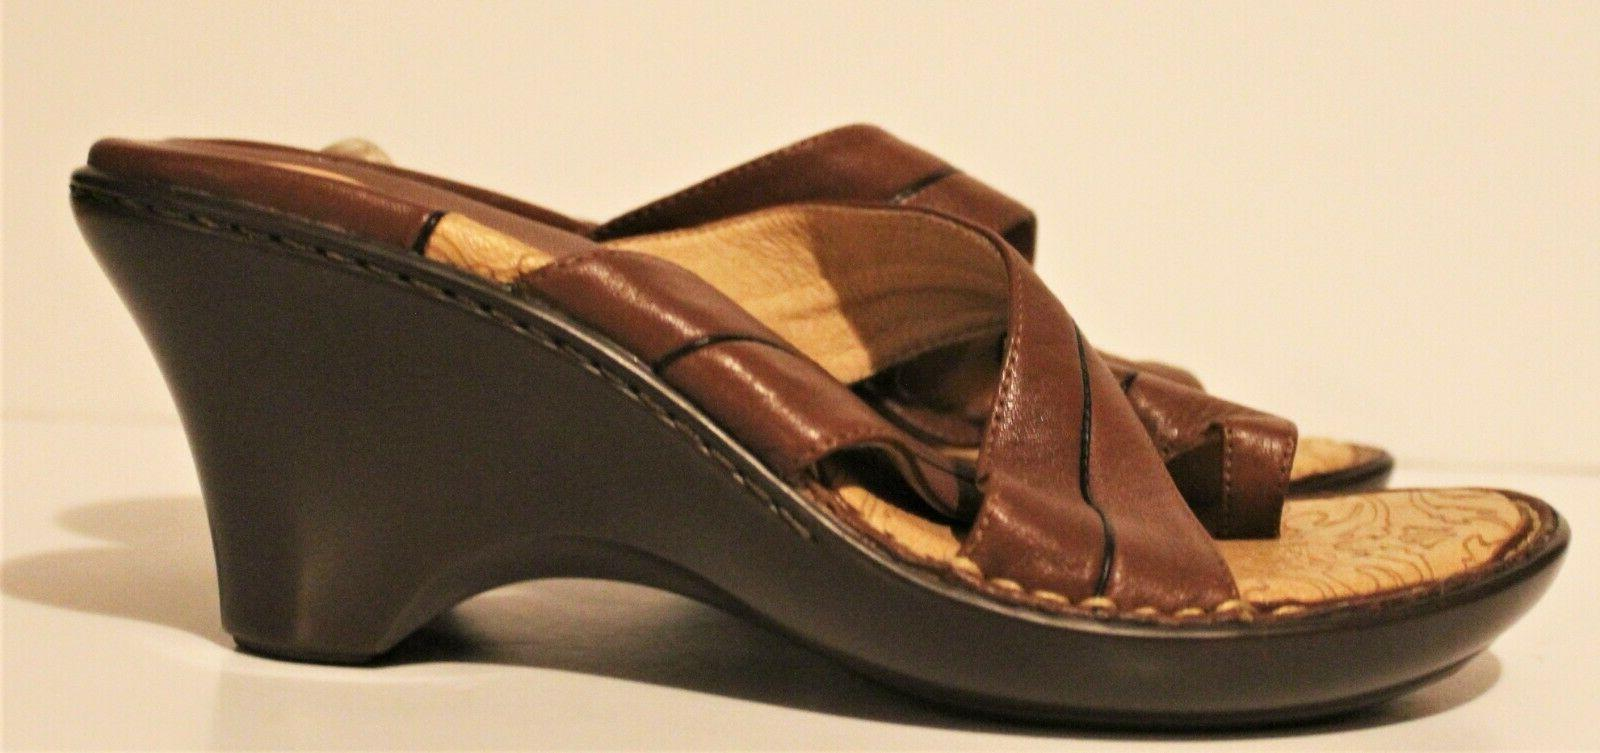 Sofft Brown Leather Shoes Slip-On Size